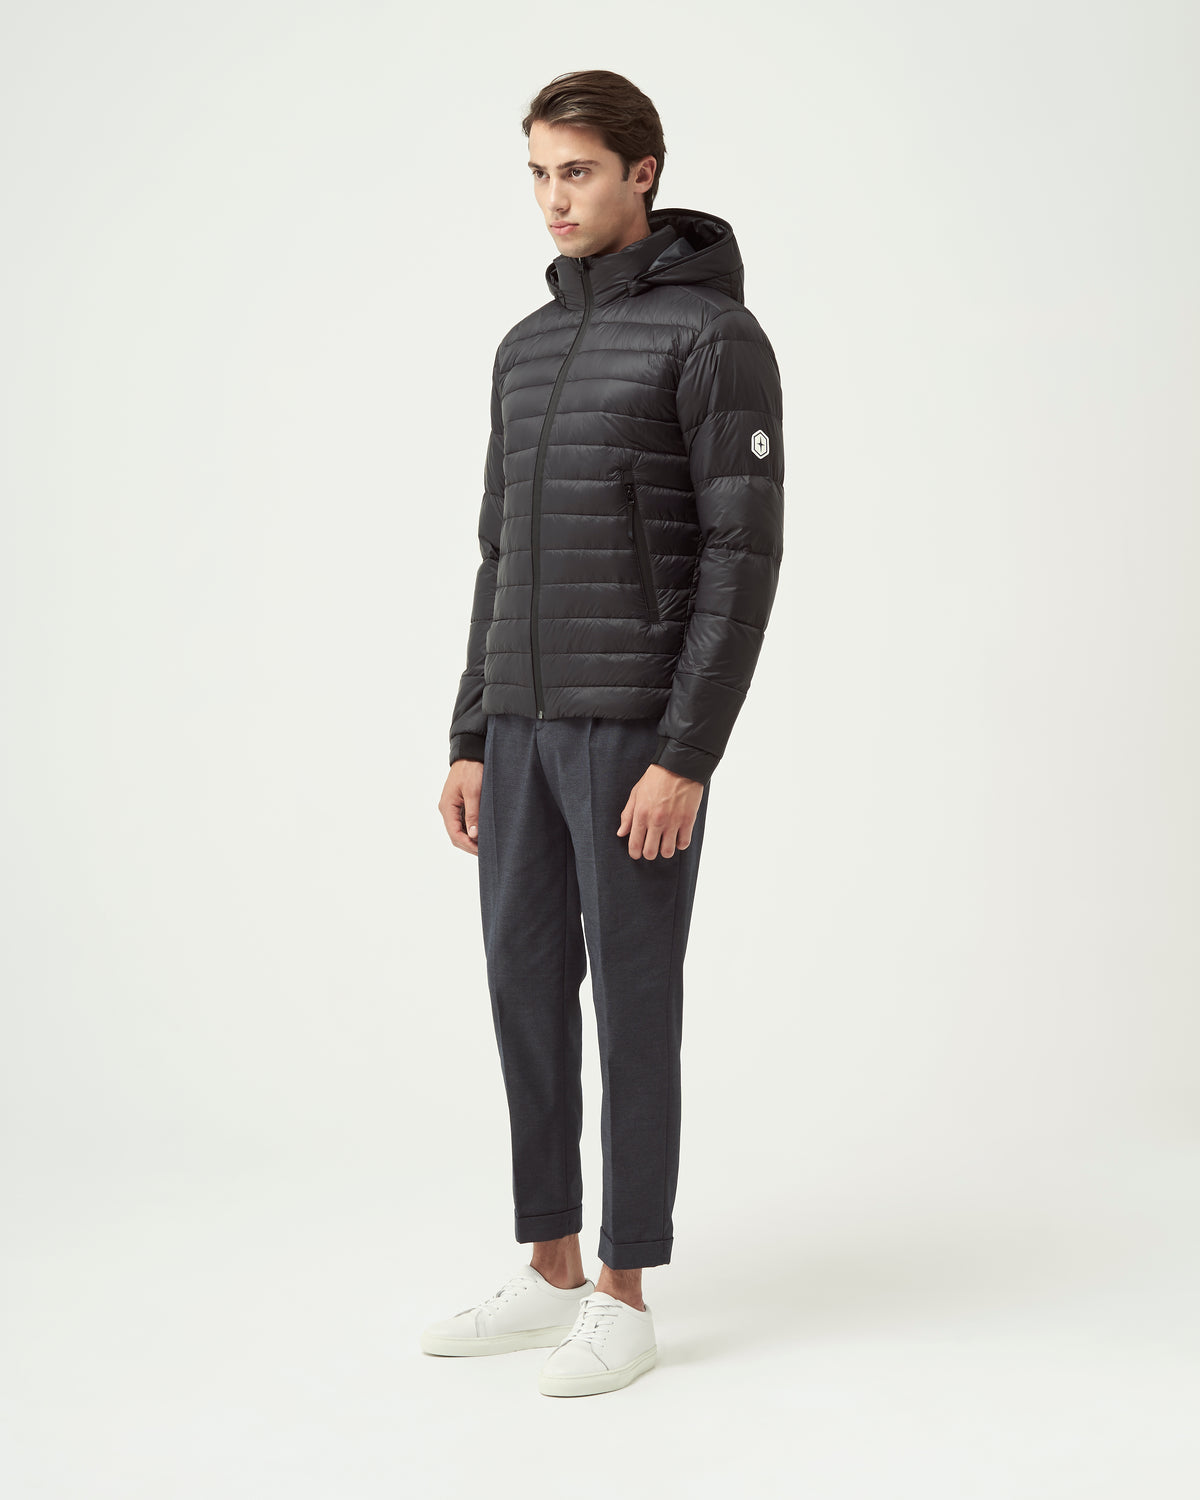 Quartz Co. - Canadian Made Winter Jackets | Lans | Men Down Lightweight Jacket Description | Side